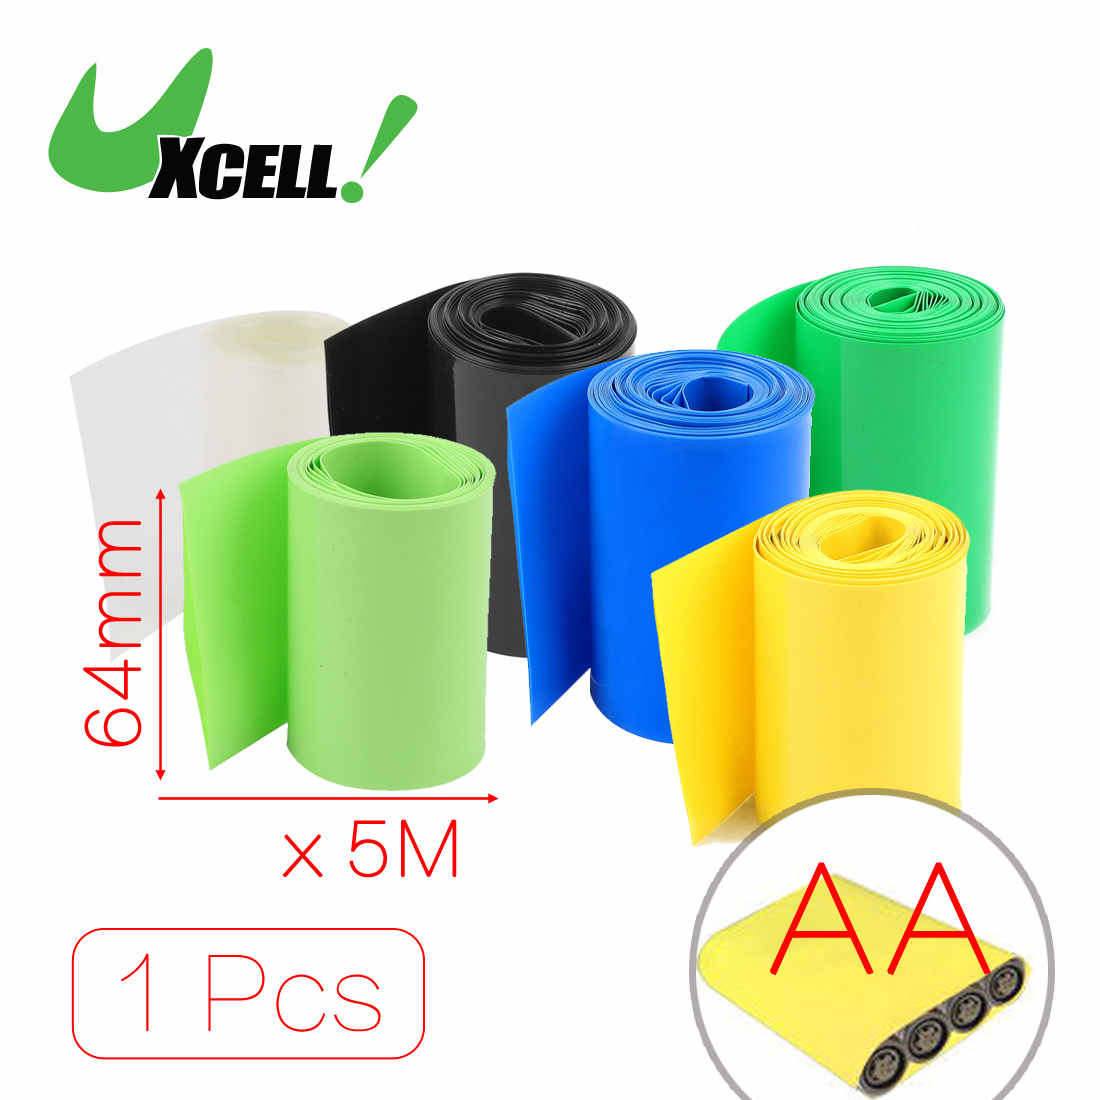 Uxcell 1pcs Hot Sale 5Meter Length 64mm 70mm Width PVC Heat Shrink Wrap Tube For AA Battery Pack Yellow Black Blue Clear Green коньки onlitop pvc 64mm 1231426